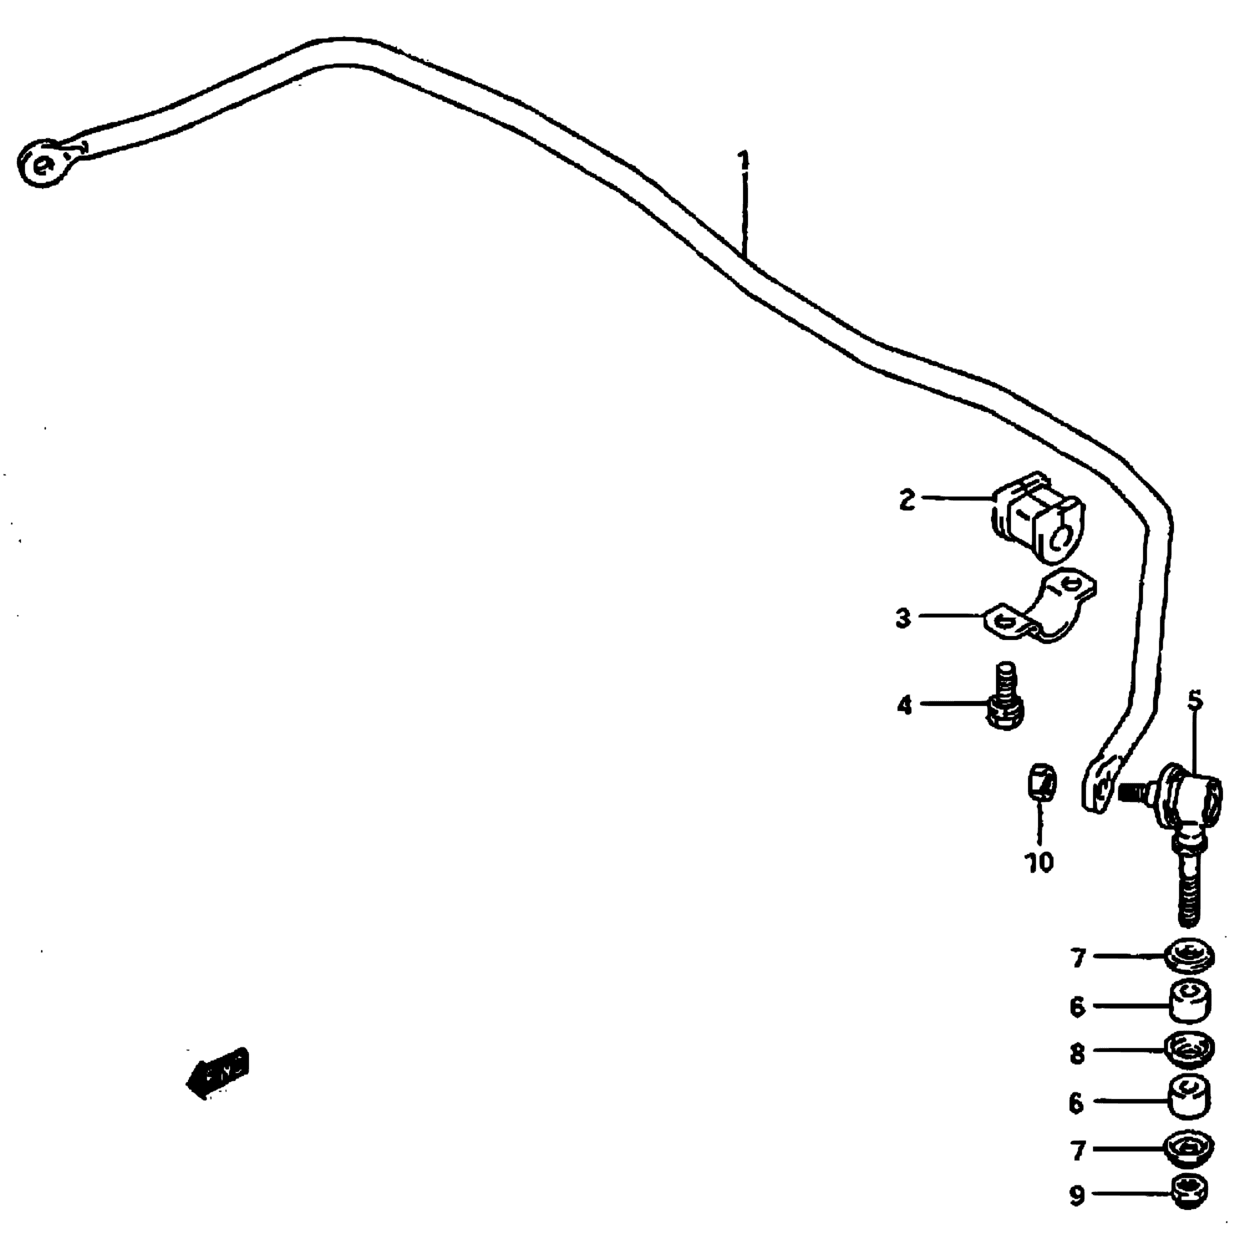 1994 suzuki swift gti wiring diagram